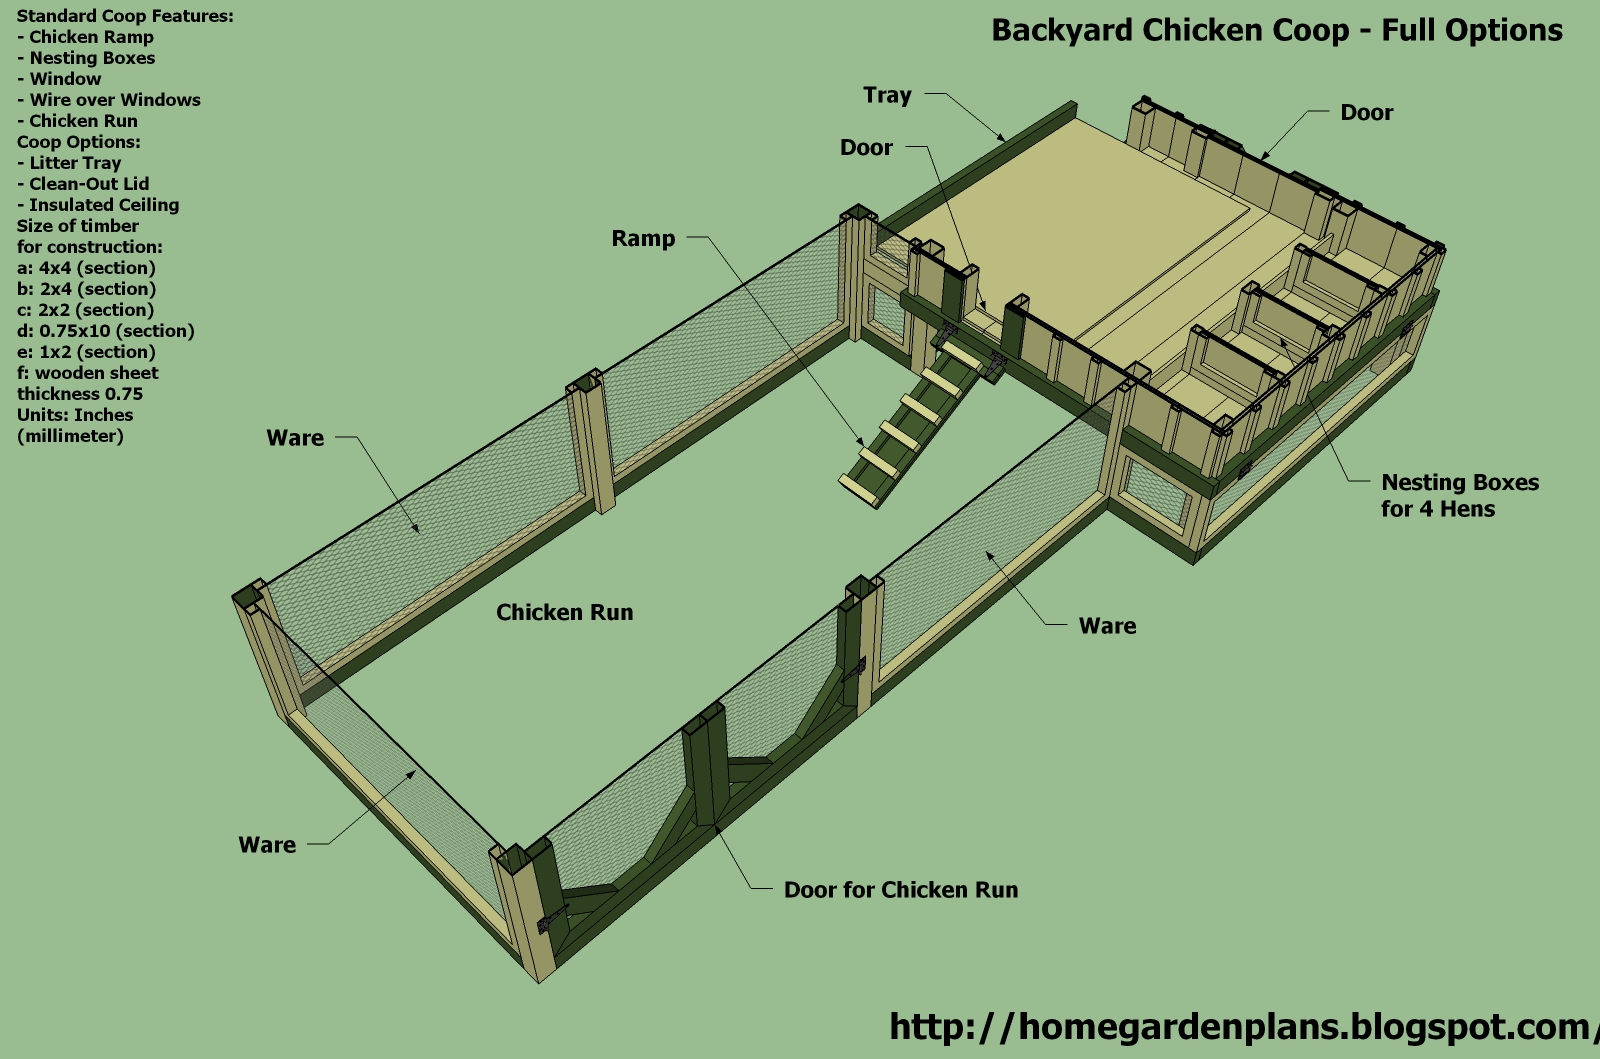 Dewa coop topic chicken coop plans 6 chickens for Free coop plans